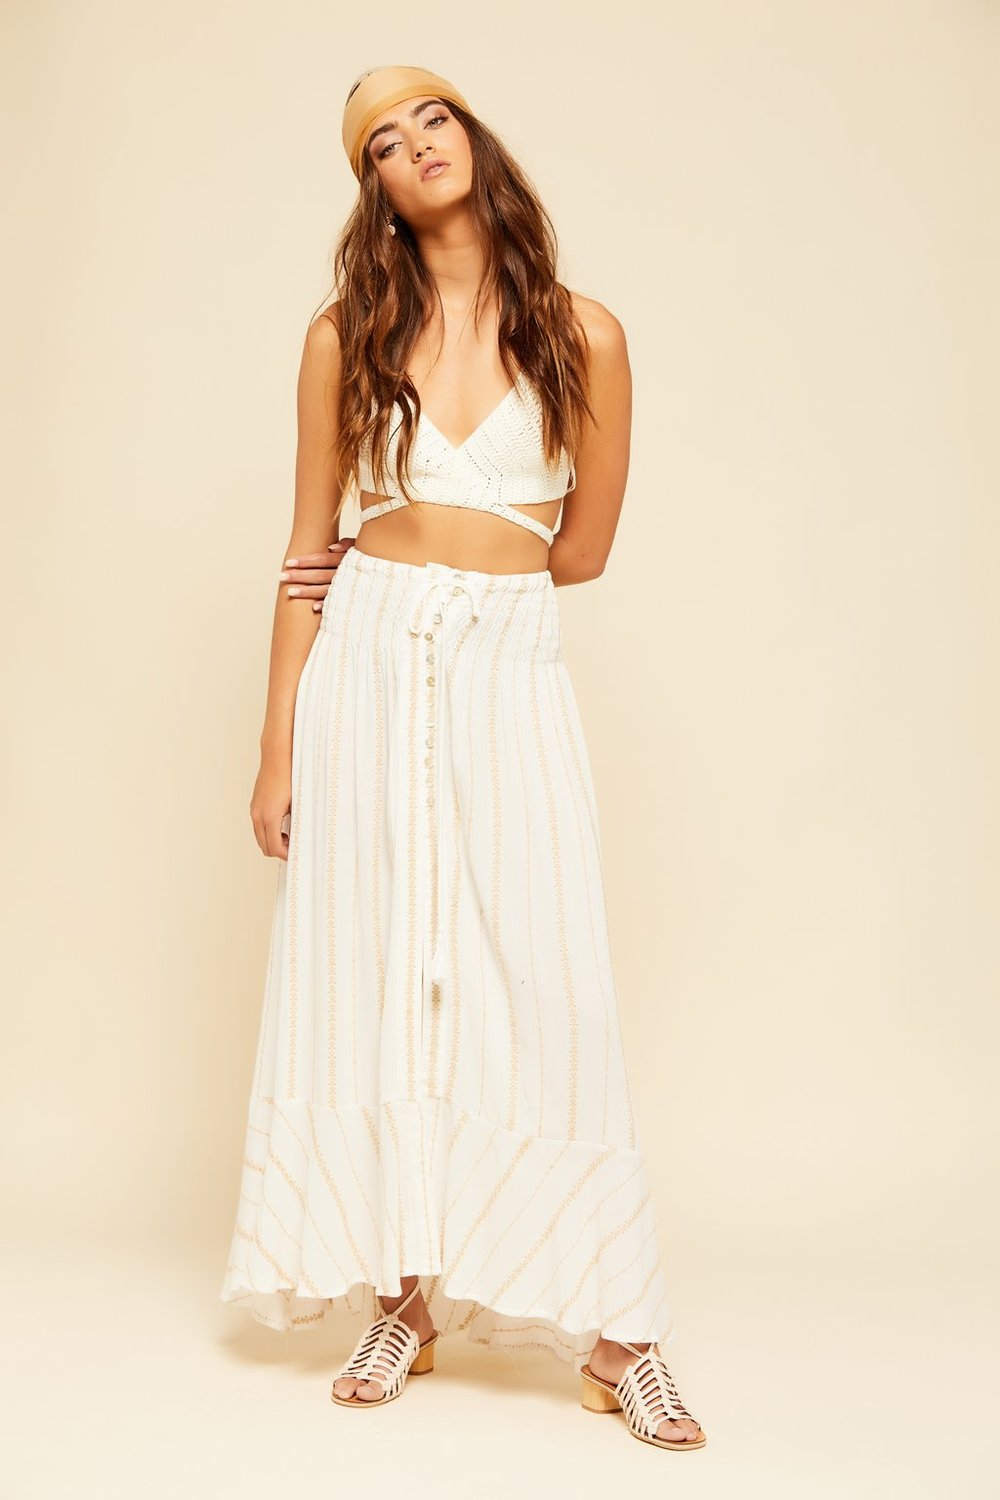 burning-man-essential-clothing-long-skirt-maxi-white-curio-what-to-wear-daytime.jpg